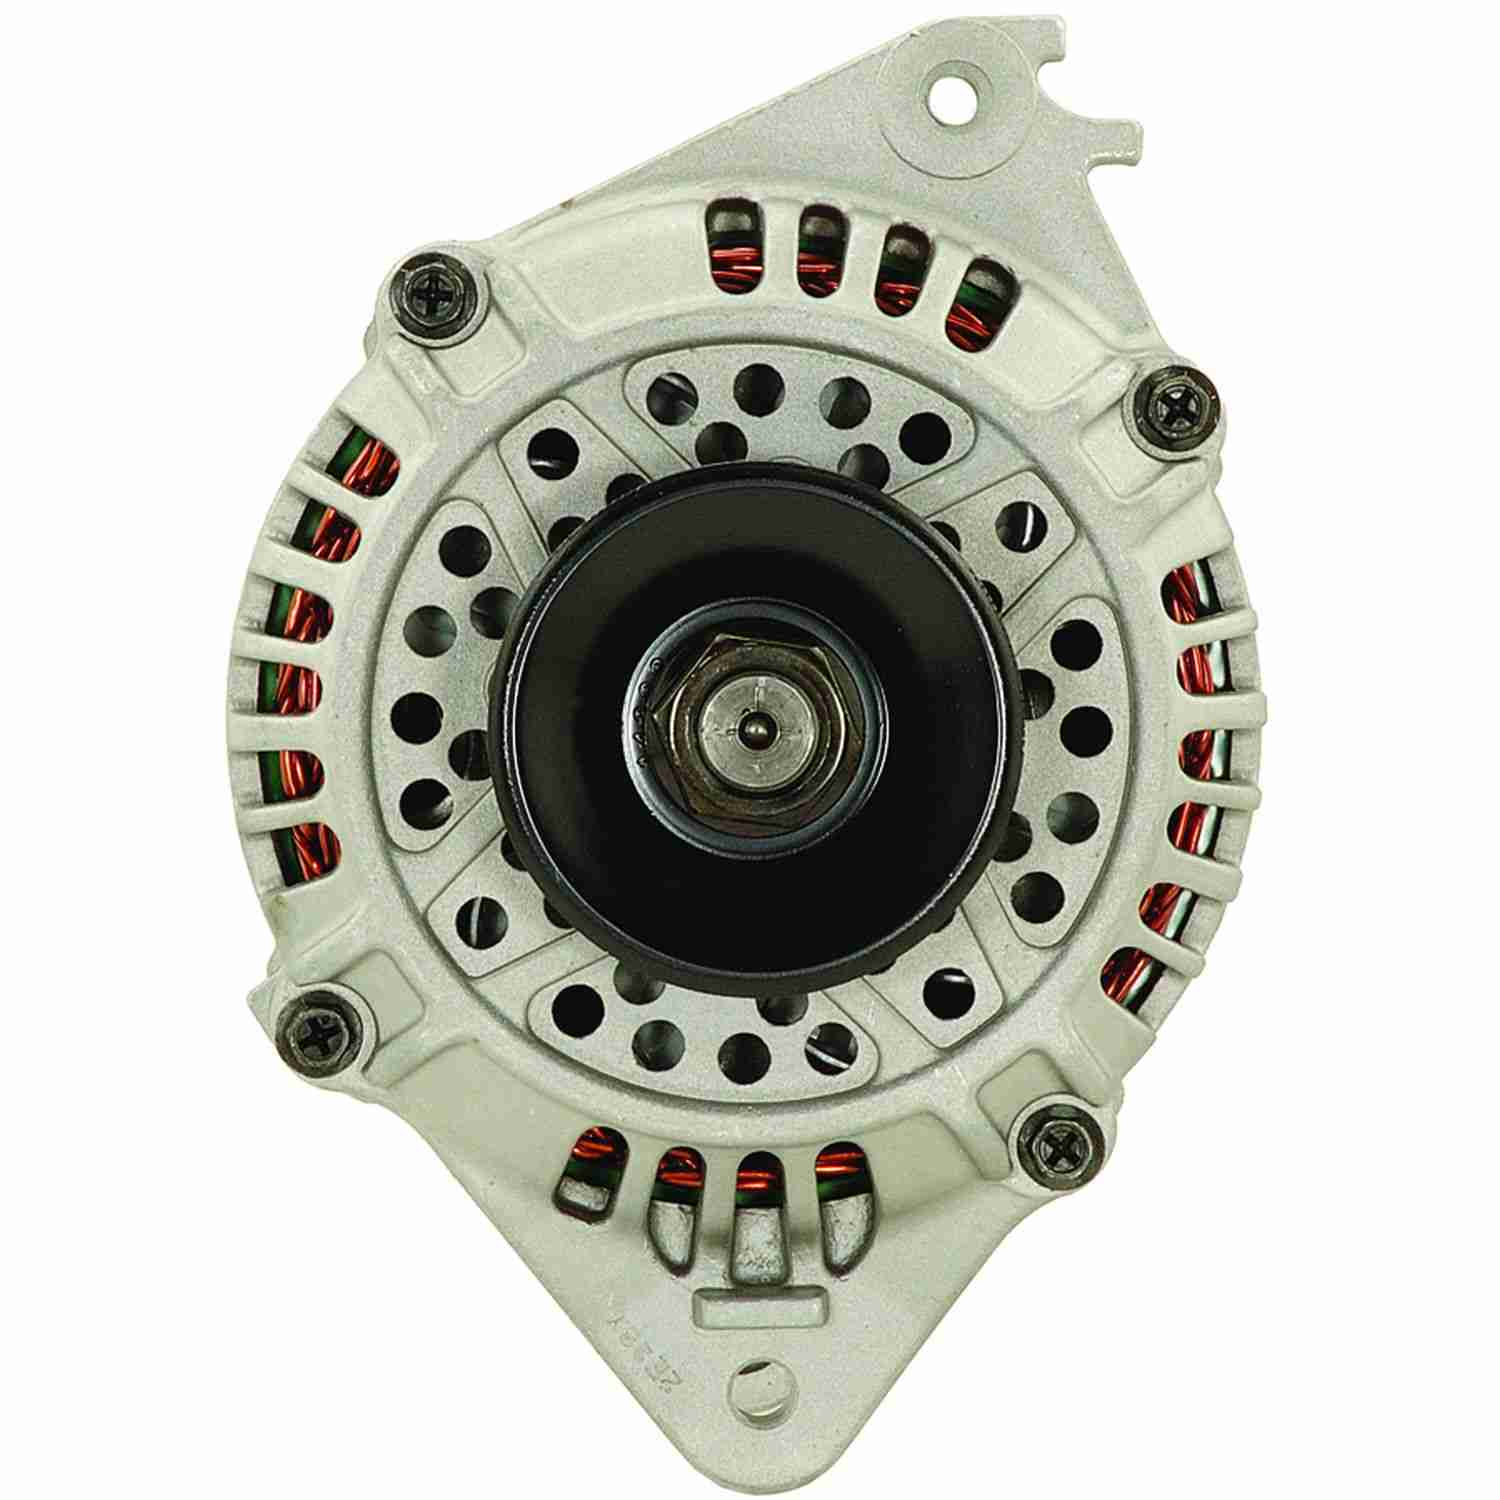 ACDELCO GOLD/PROFESSIONAL - Alternator - DCC 335-1166